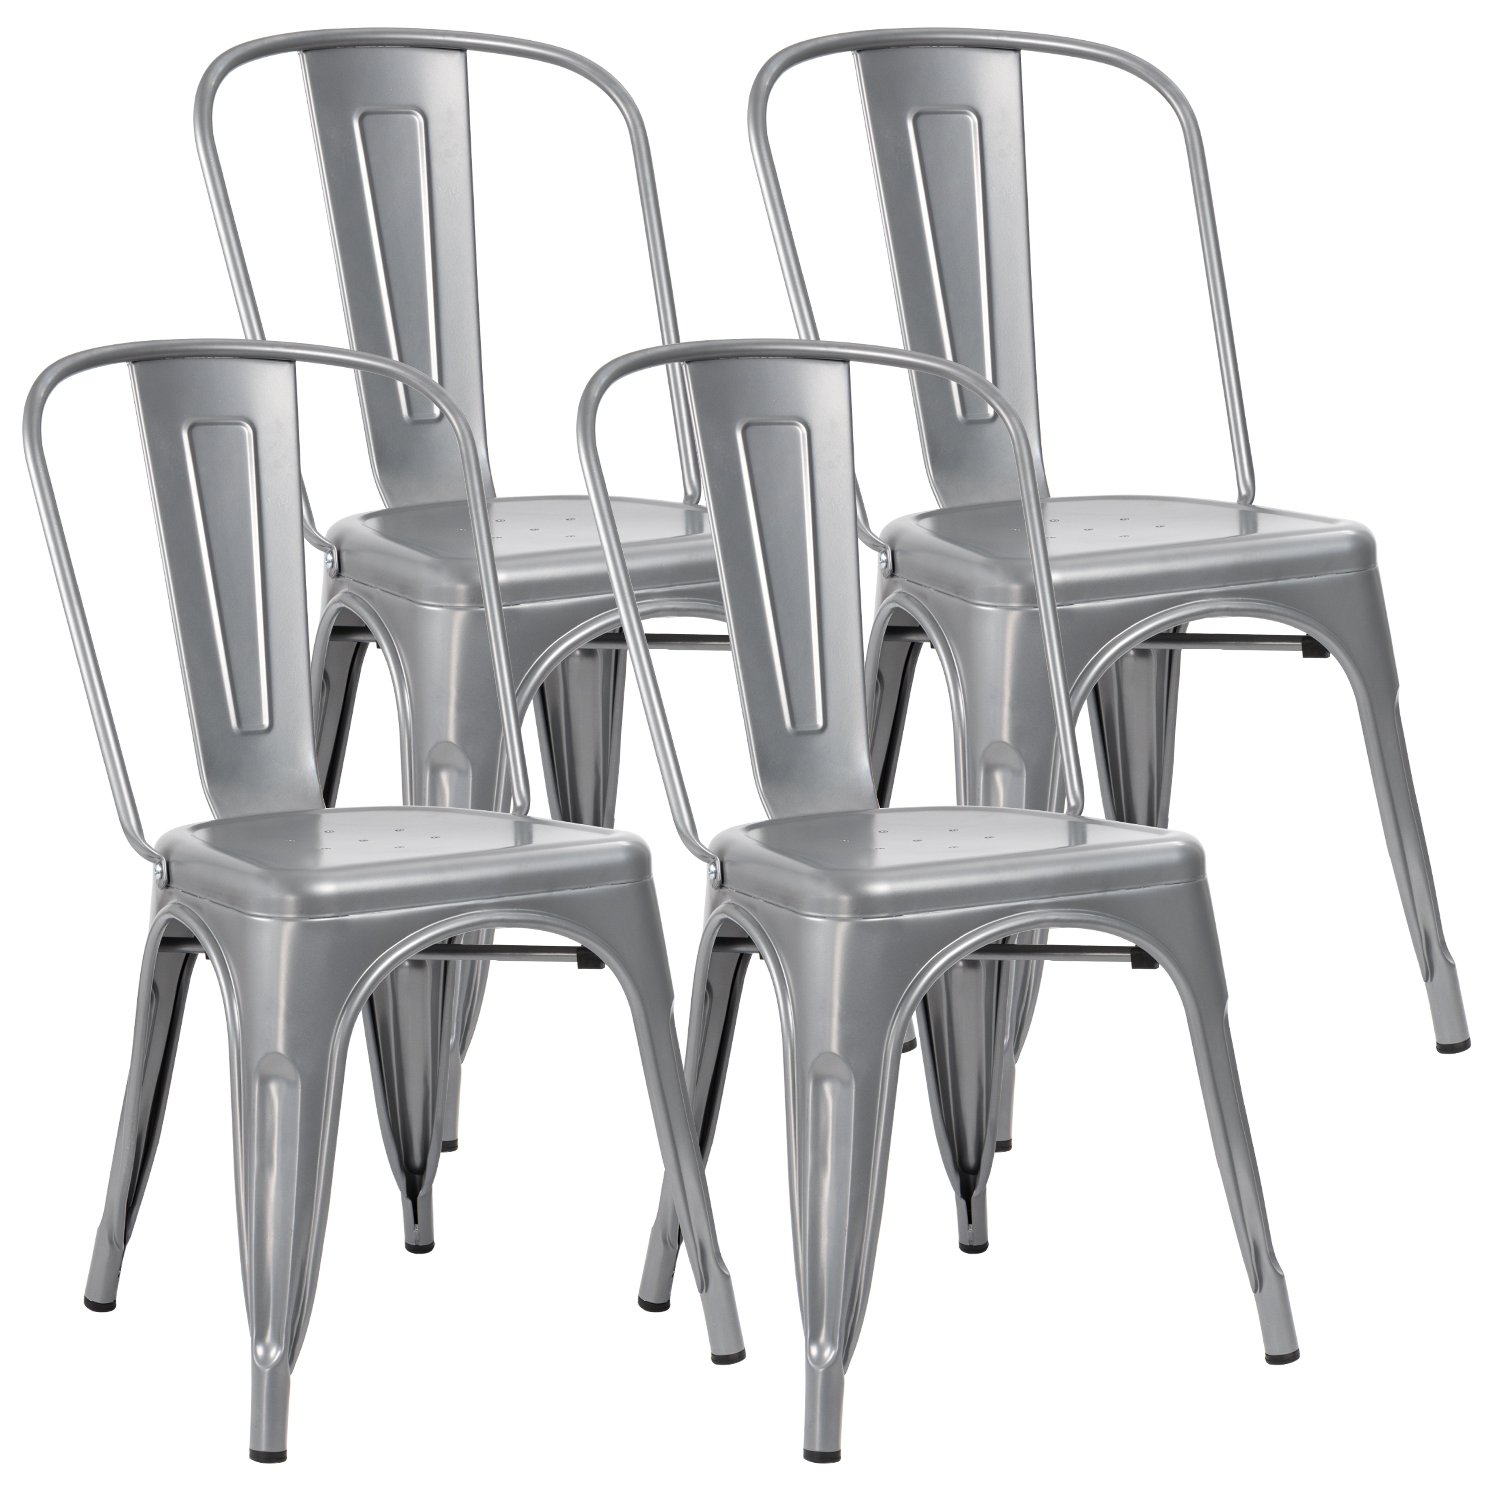 JUMMICO Metal Dining Chair Stackable Indoor-Outdoor Chairs Chic Bistro Cafe Side Chairs for Kitchen Use Set of 4 (Black) SDMC18002BL-4